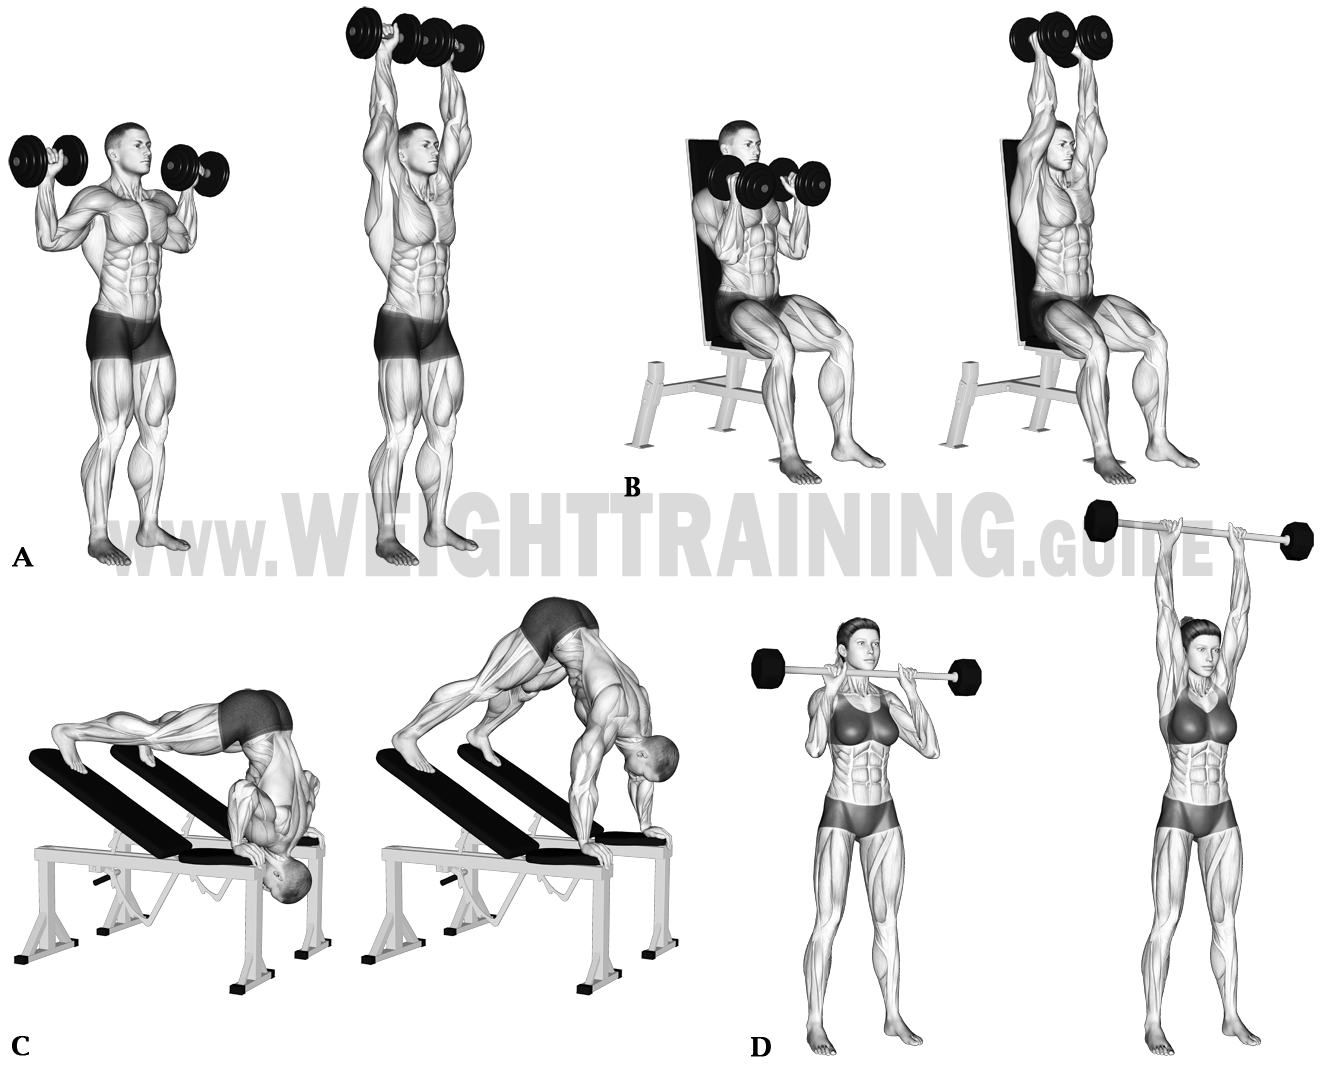 Vertical pushing exercises